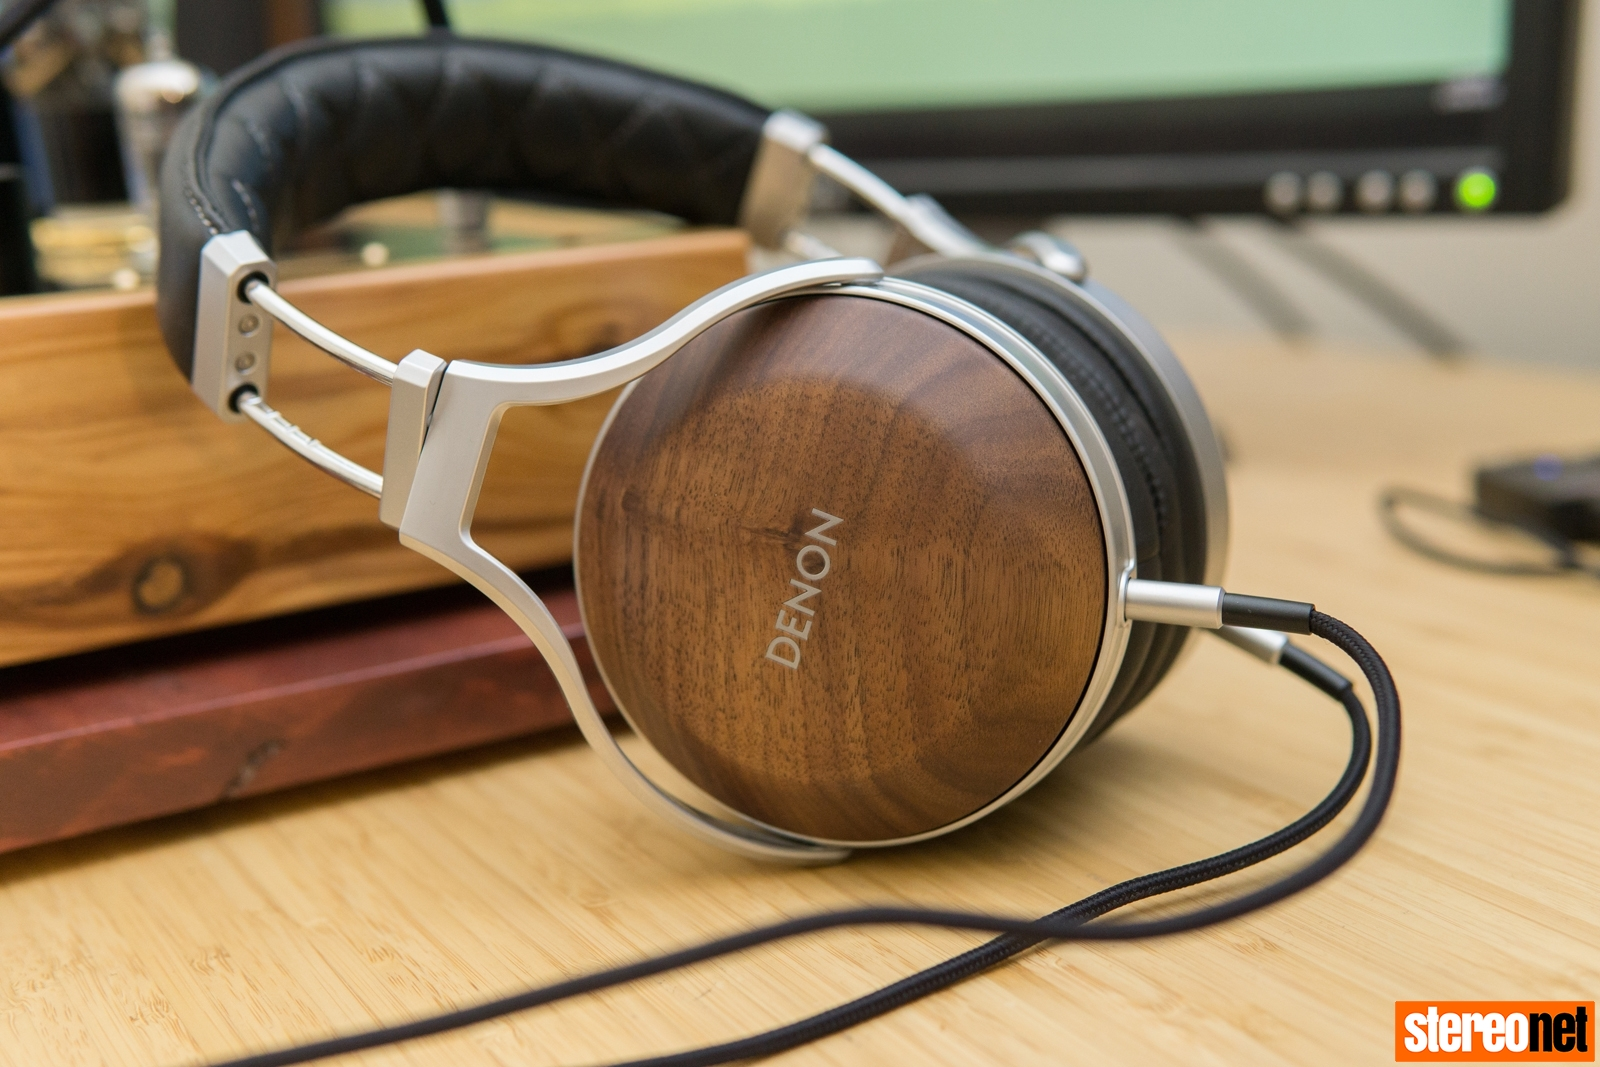 Denon AH-D7200 Headphone Review